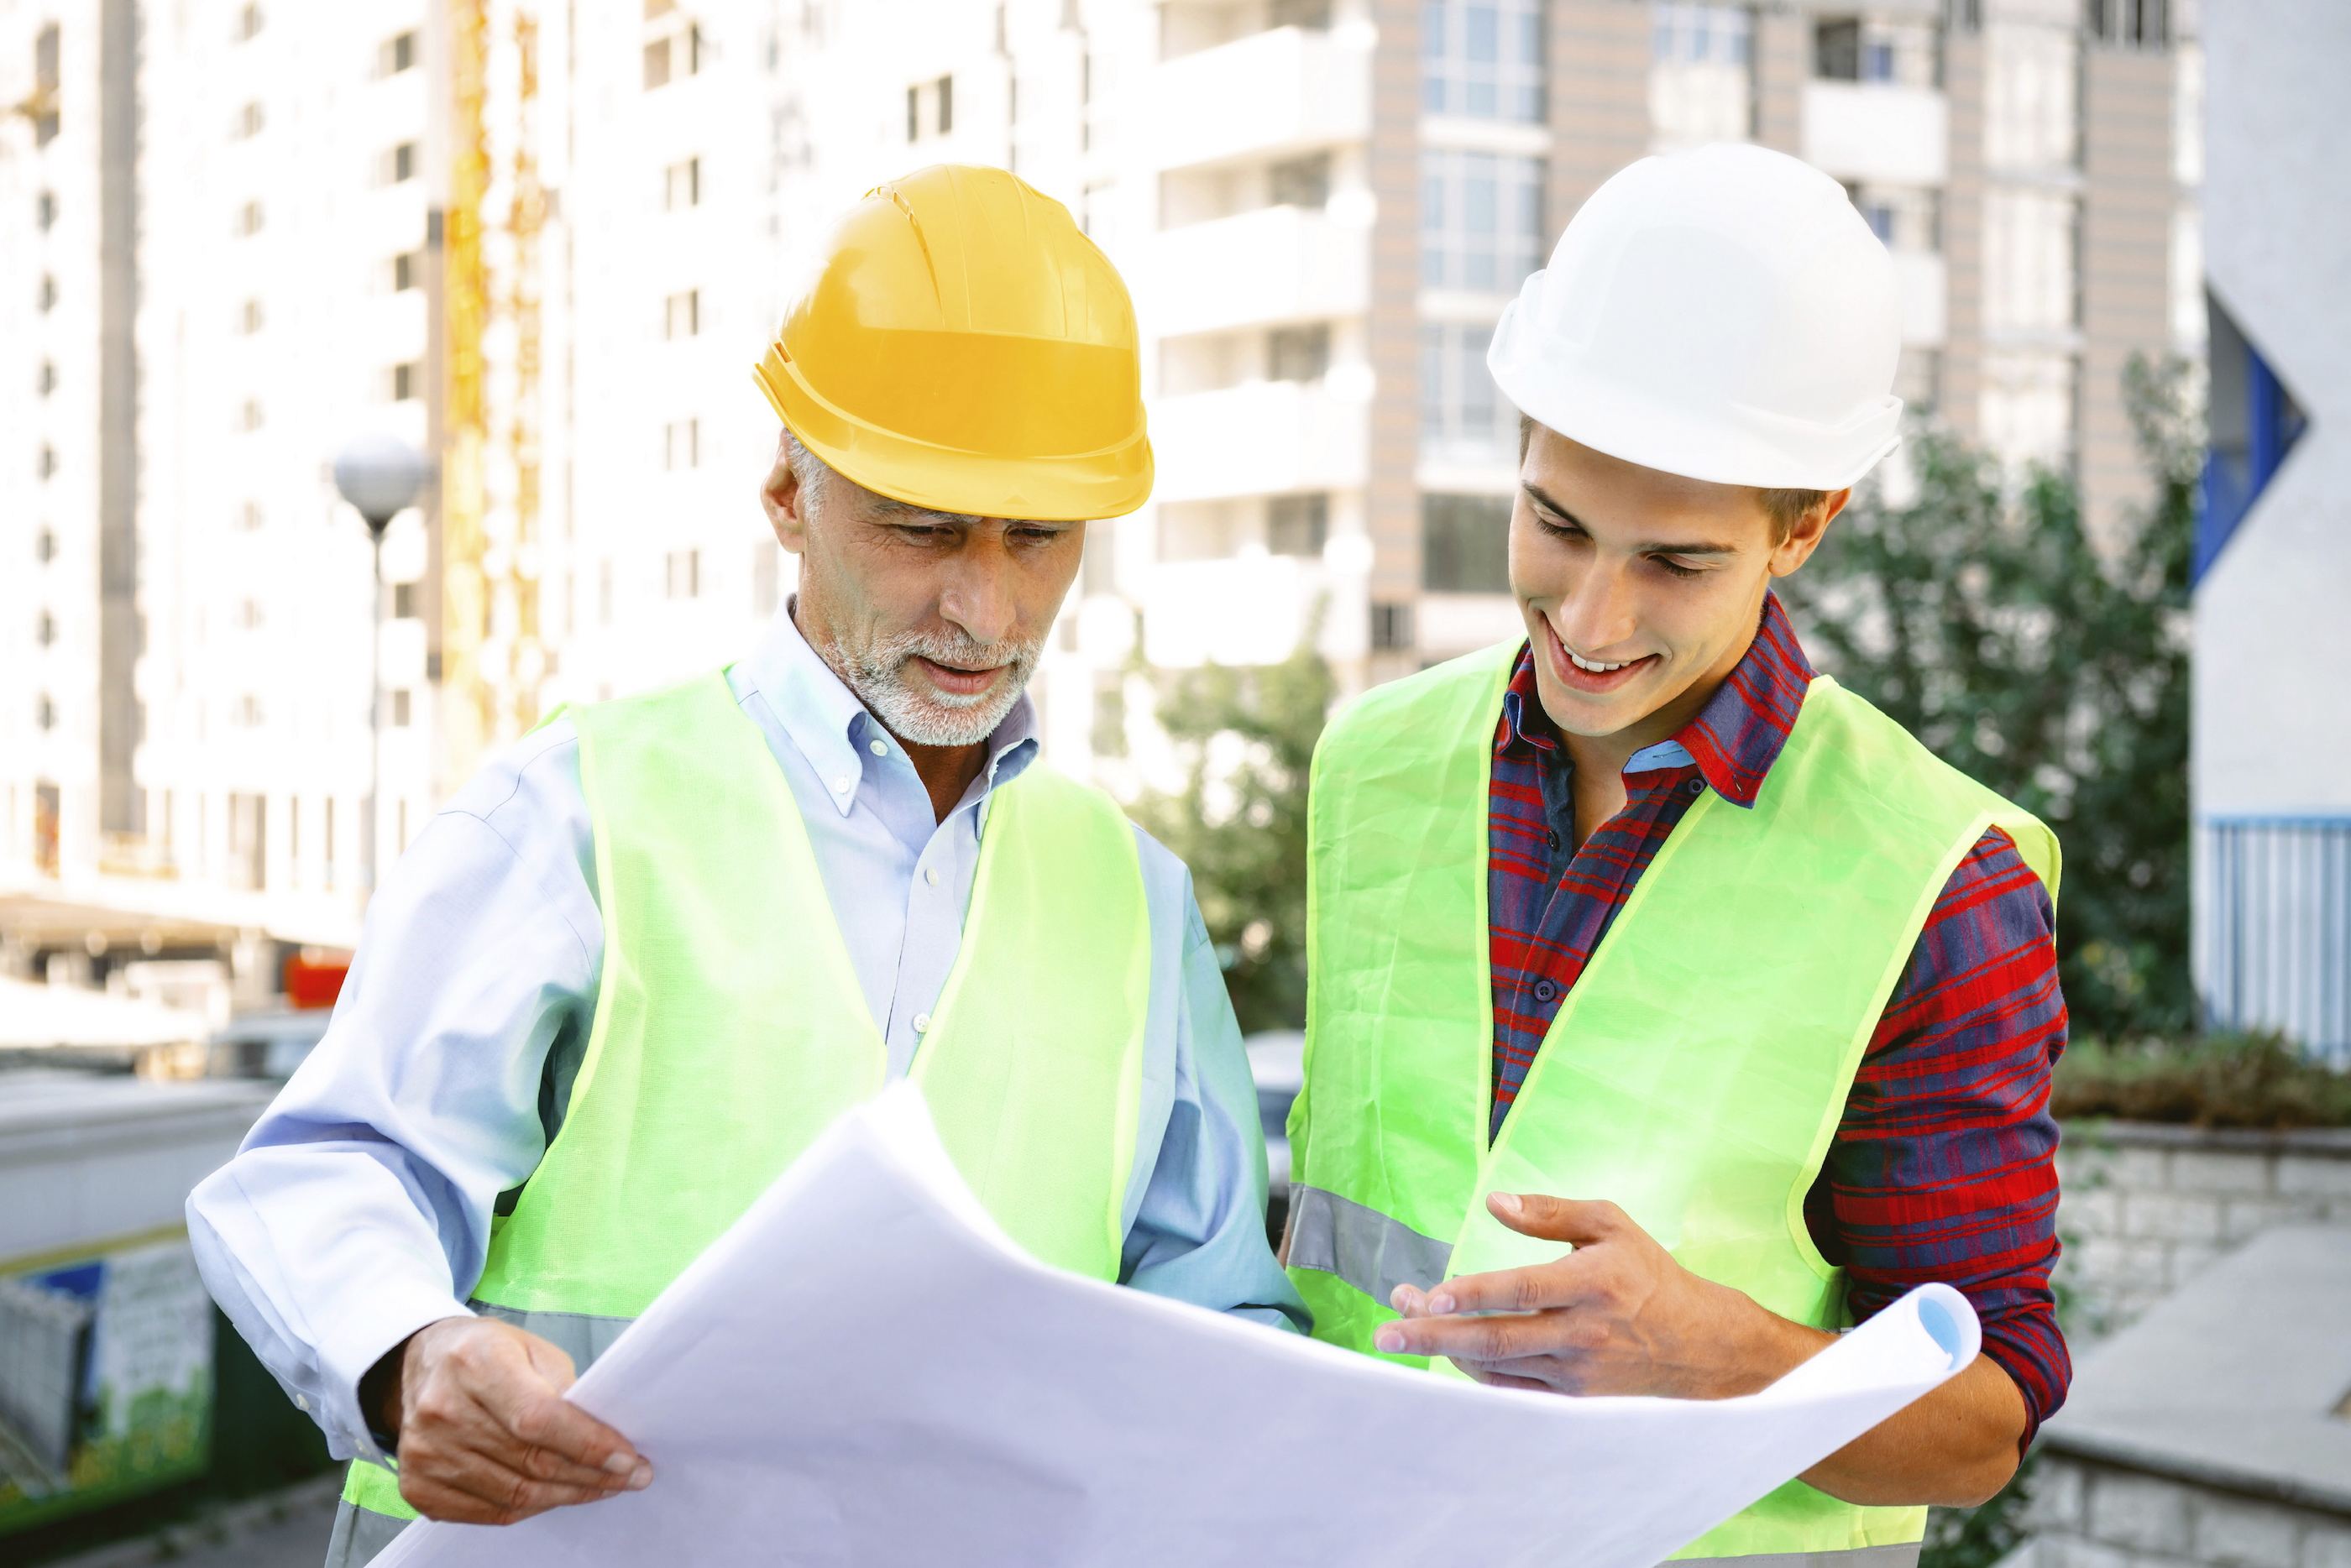 Jobs in Construction & Architecture